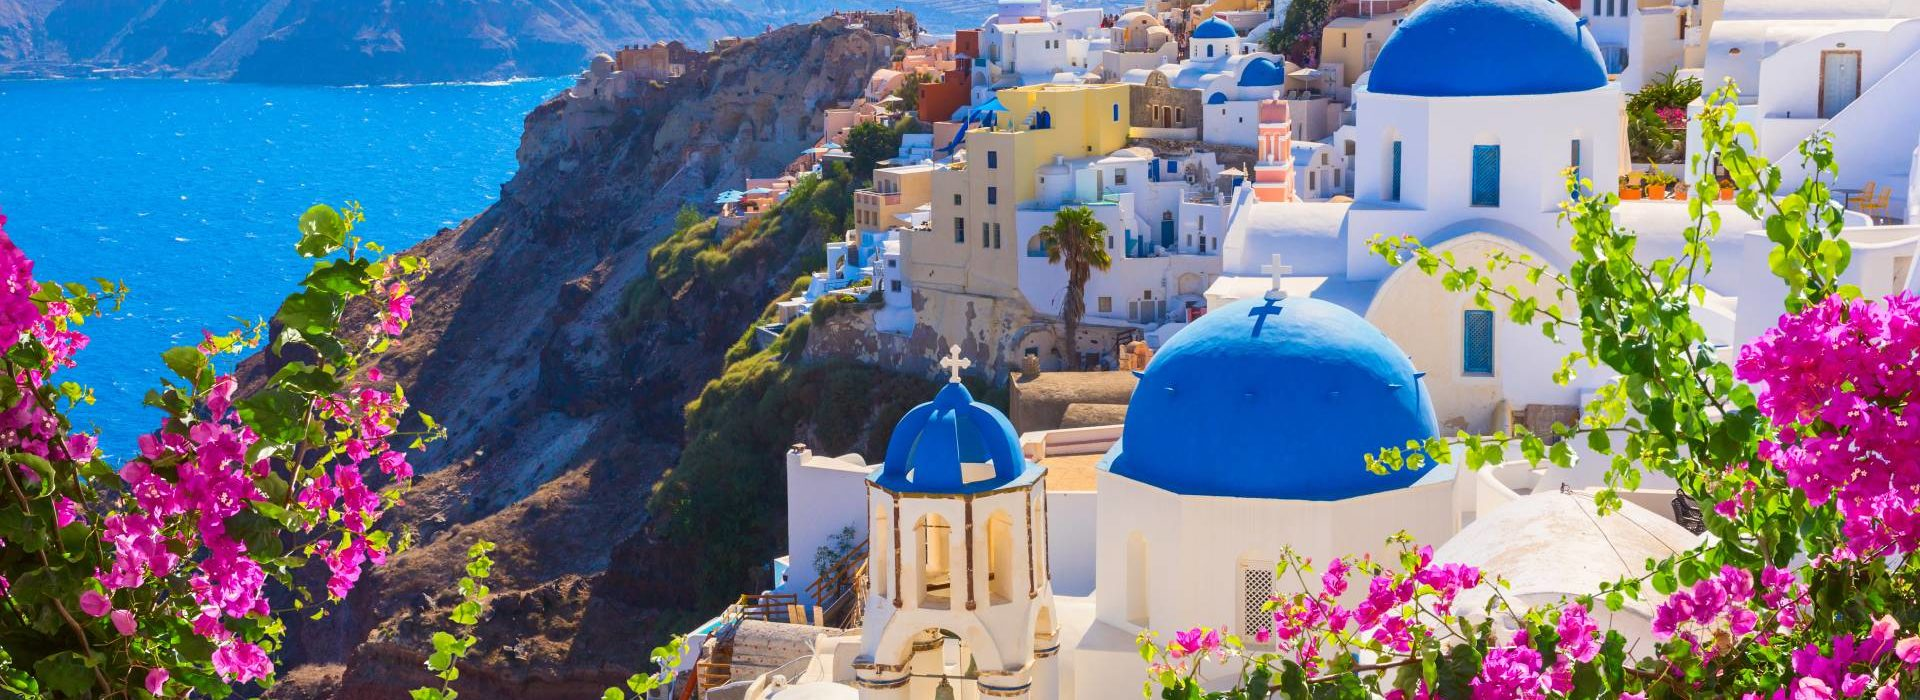 A view of Santorini